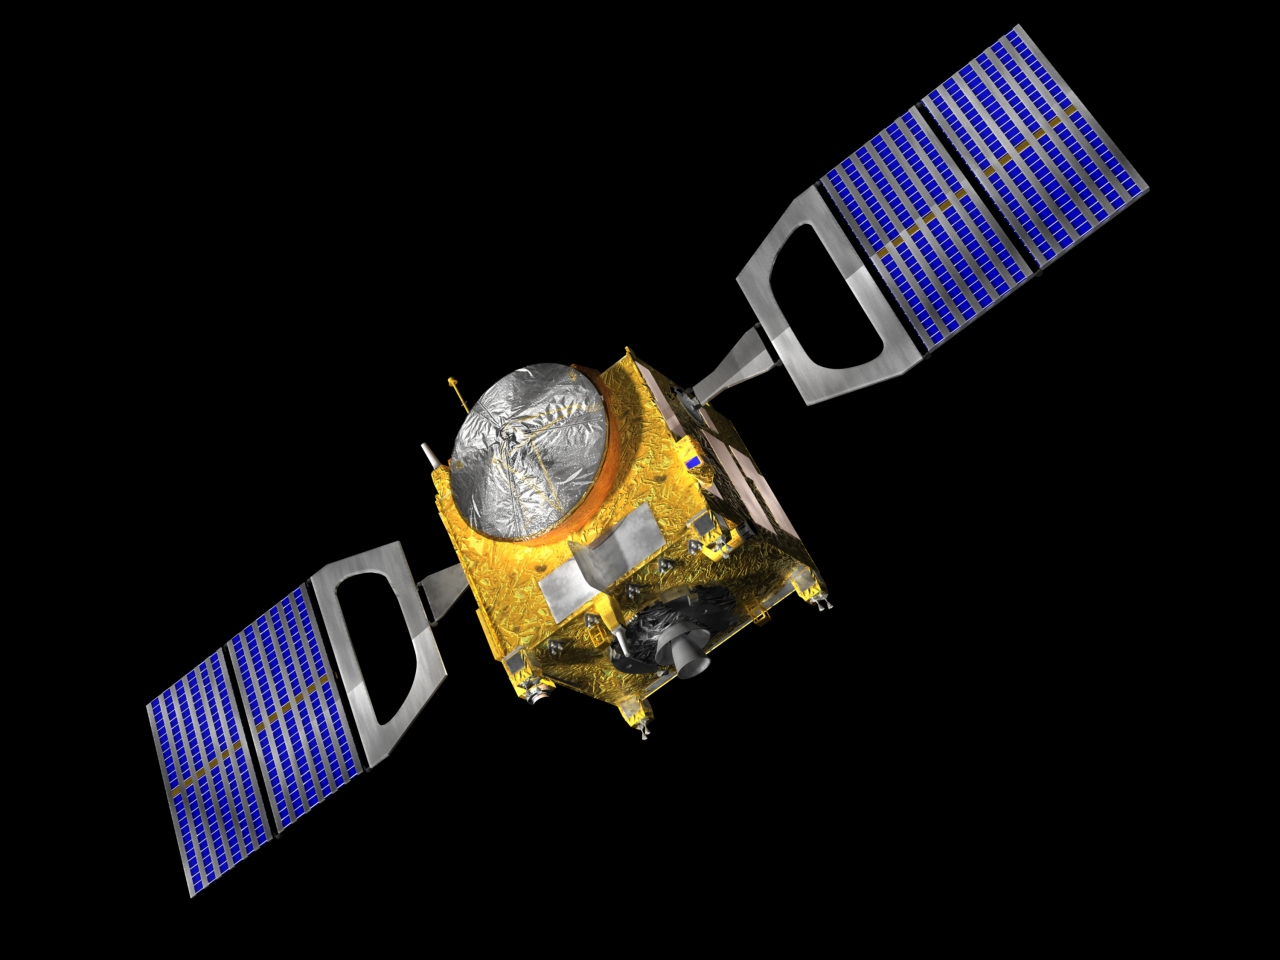 esa venus express spacecraft - photo #10